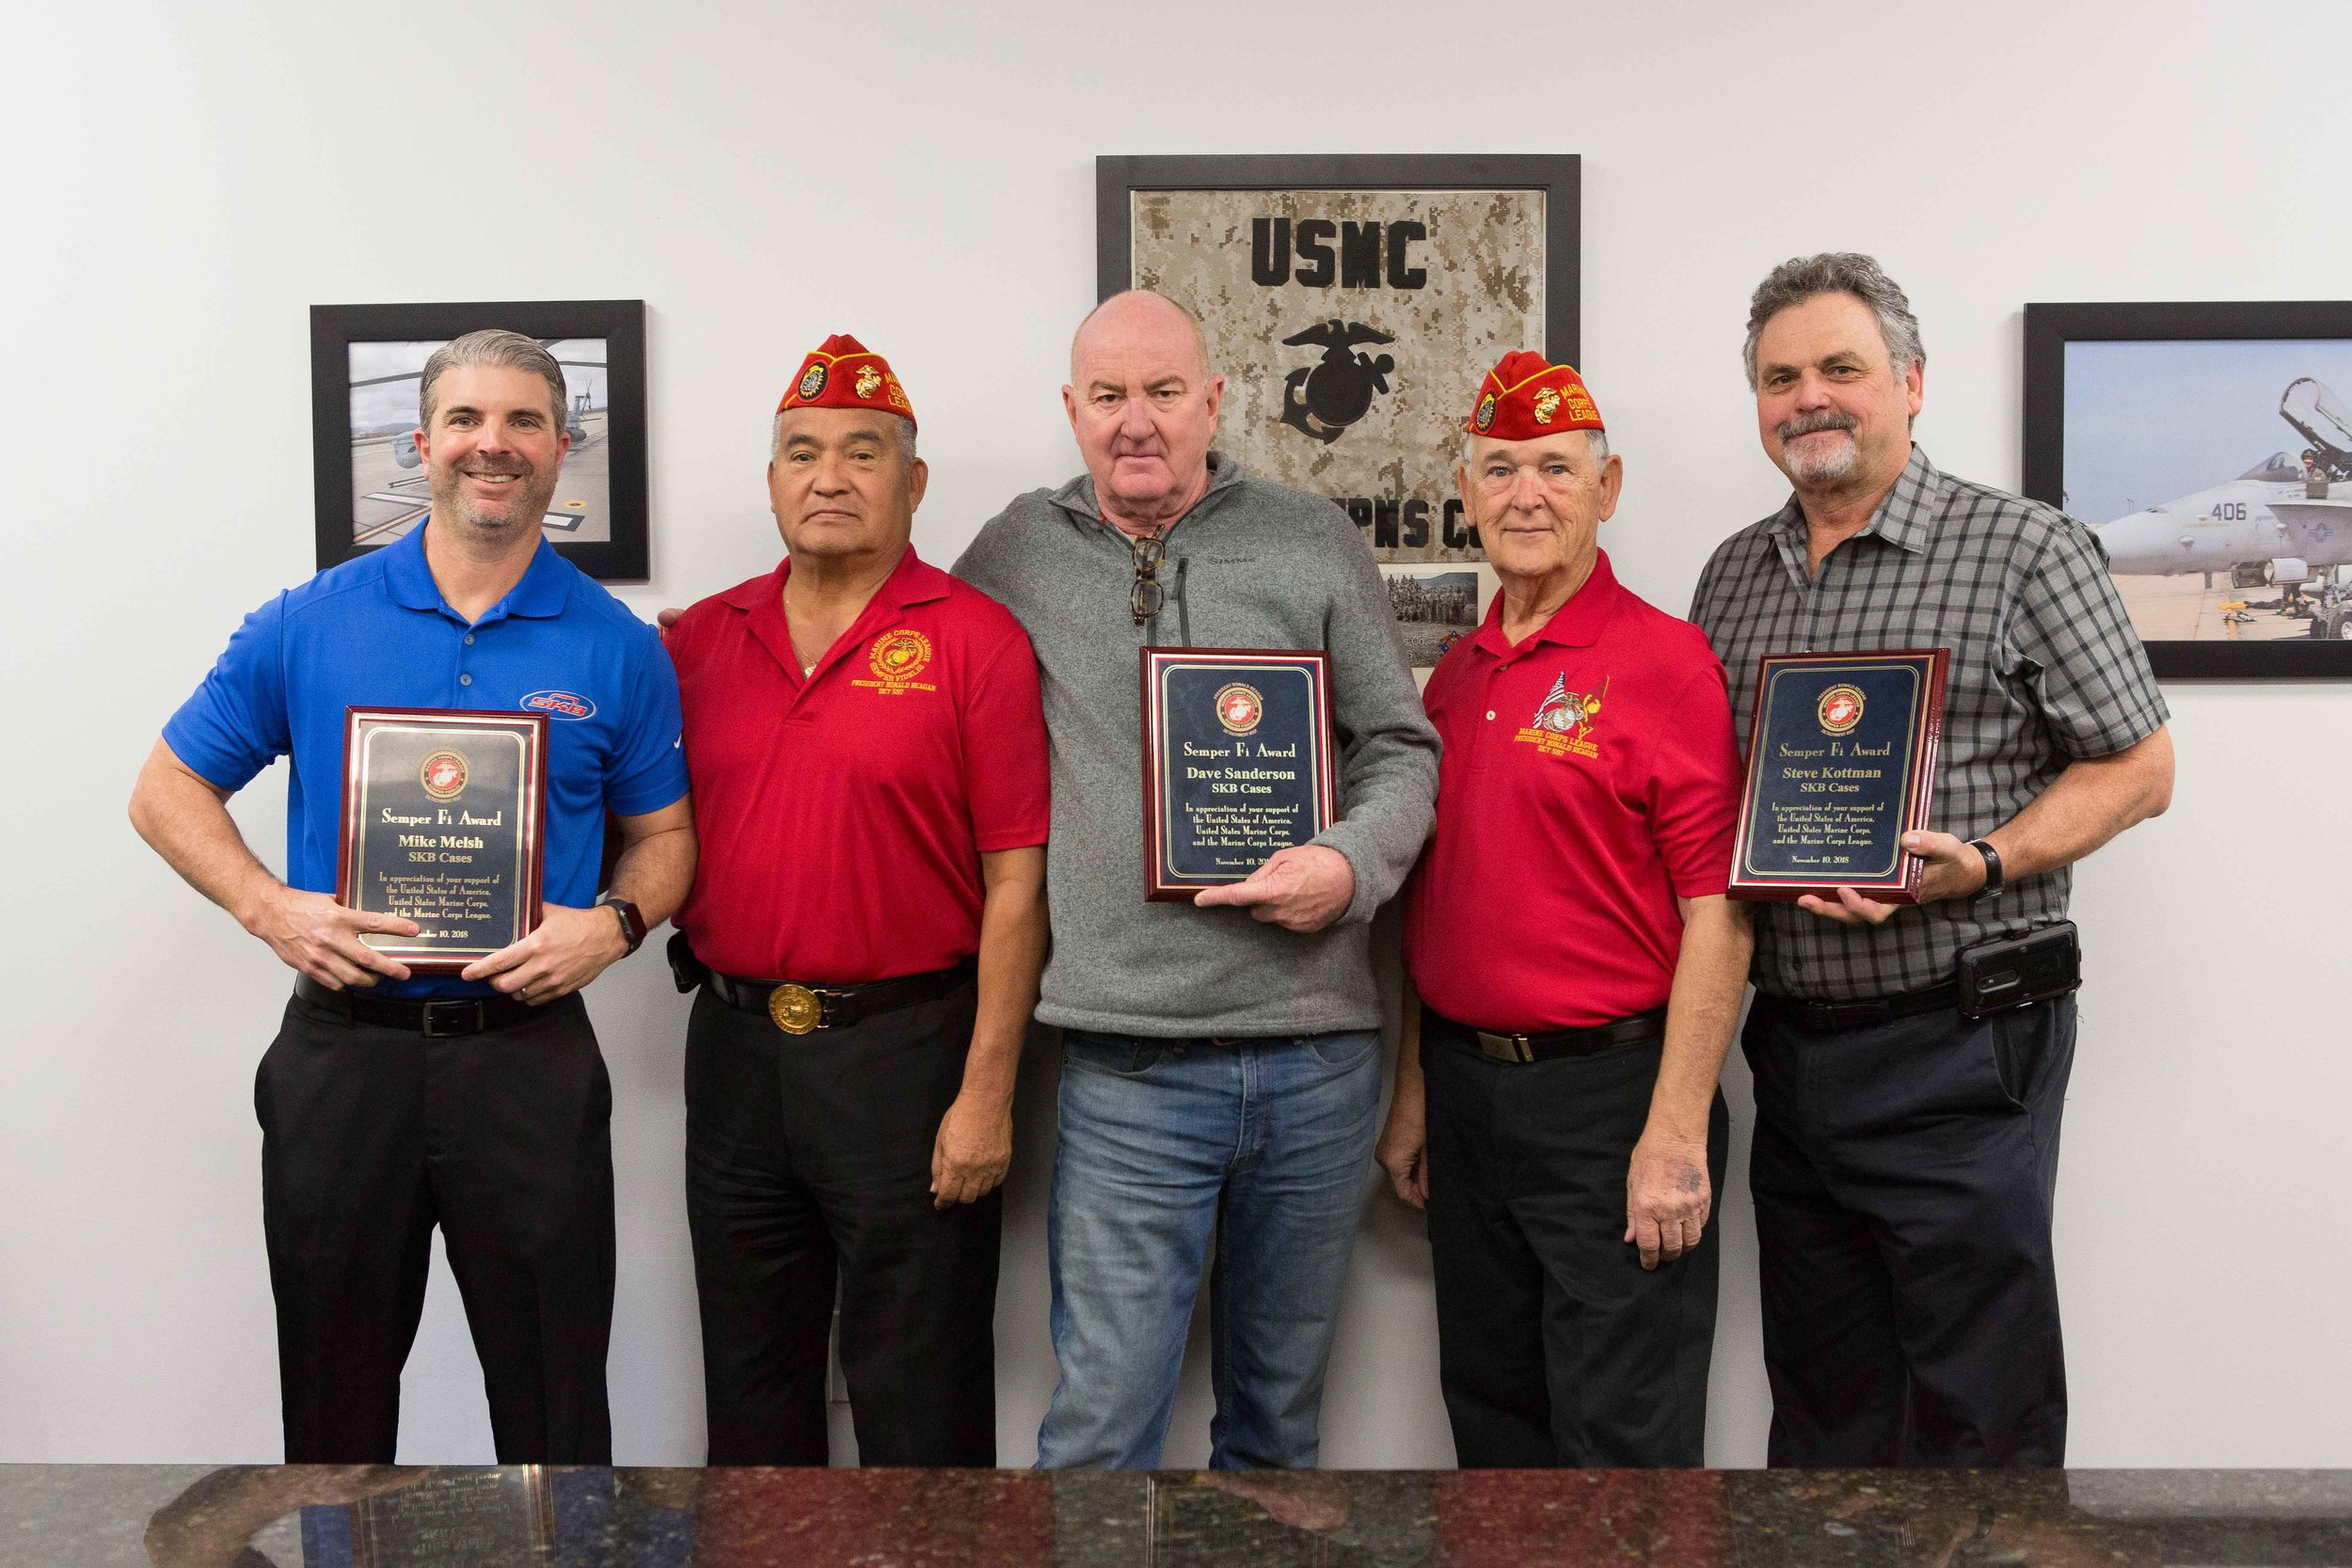 January 5, 2019   Two members of our Detachment (Ben Pfister and Fausto Galvan) traveled to Orange, CA to present 3 plaques to Executives of SKB Cases for their strong support of the Marine Corps League.  L/R: Mike Melsh (Director of Sales, West Coast), Fausto Galvan, Dave Sanderson (Owner), Ben Pfister, and Steve Kottman (Owner).